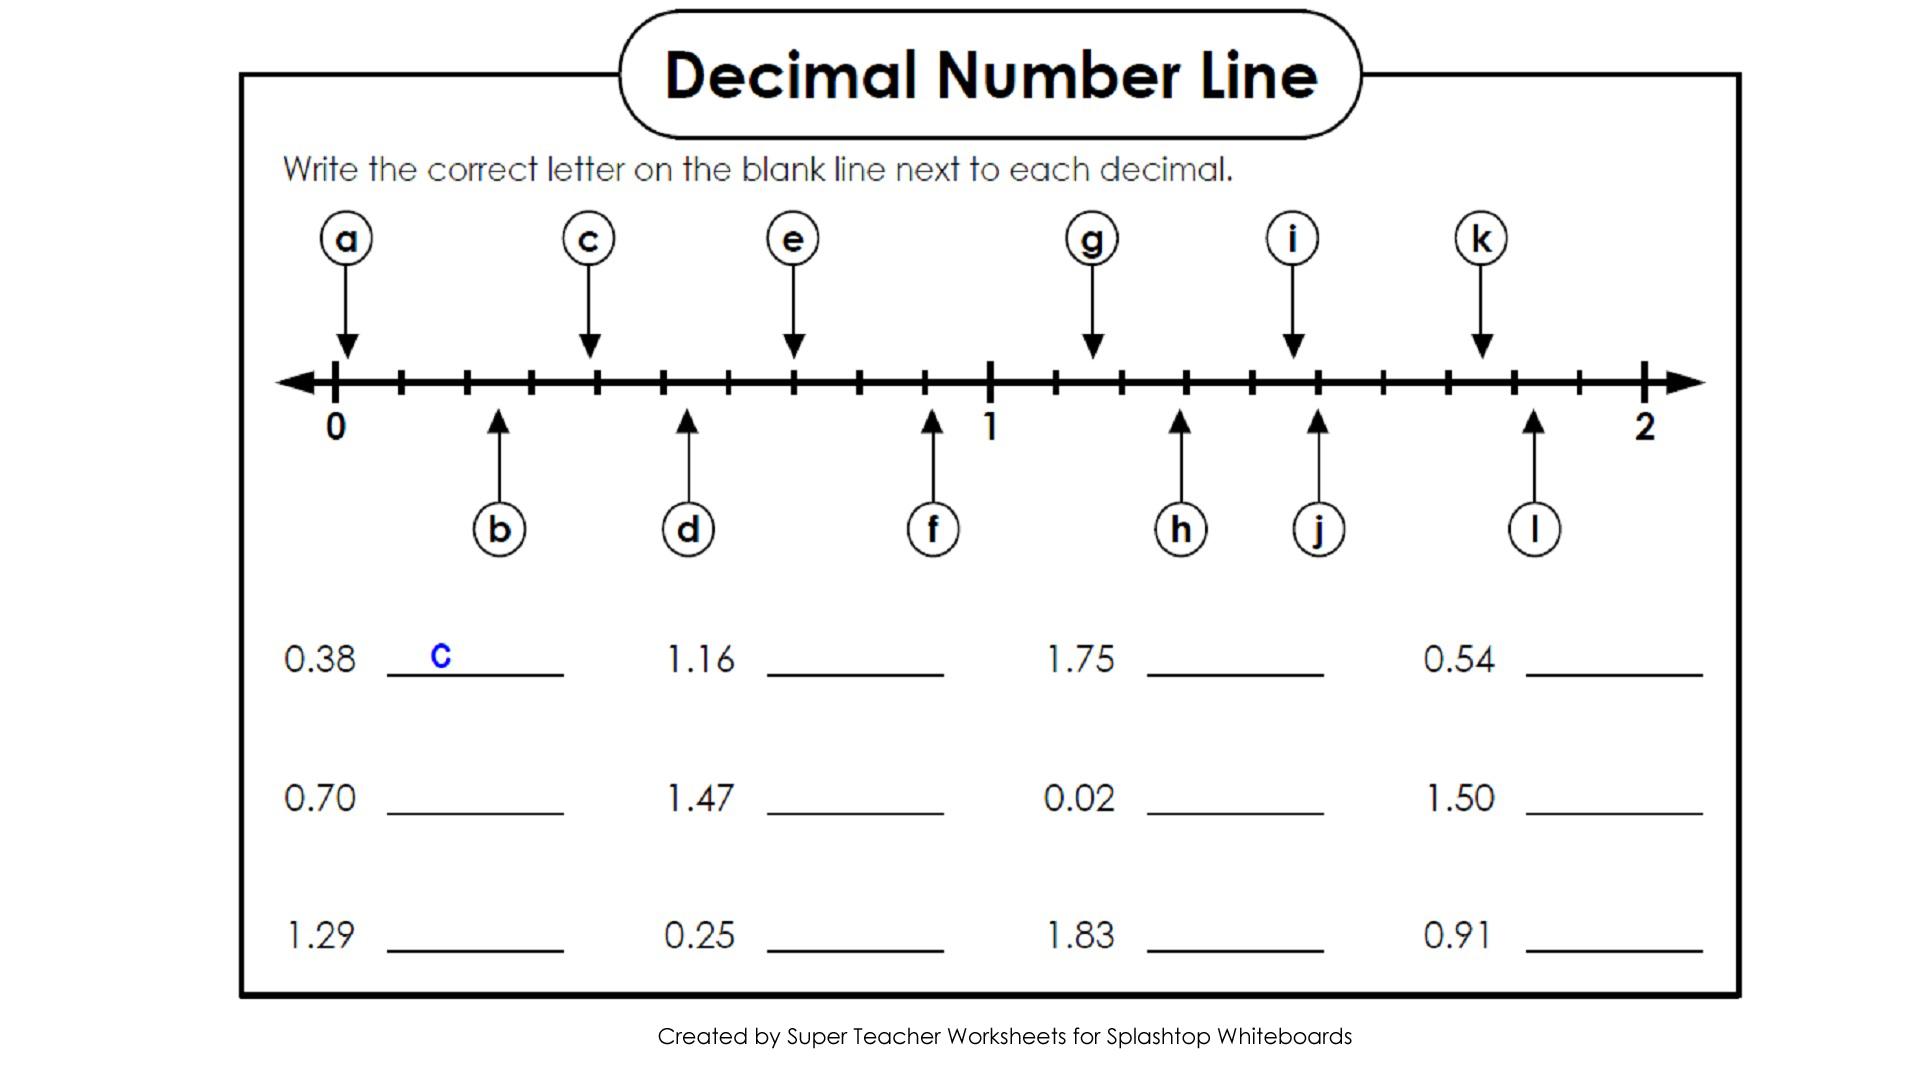 Worksheets Decimal Number Line Worksheet decimals on a numberline lessons tes teach images for blank number line fractions